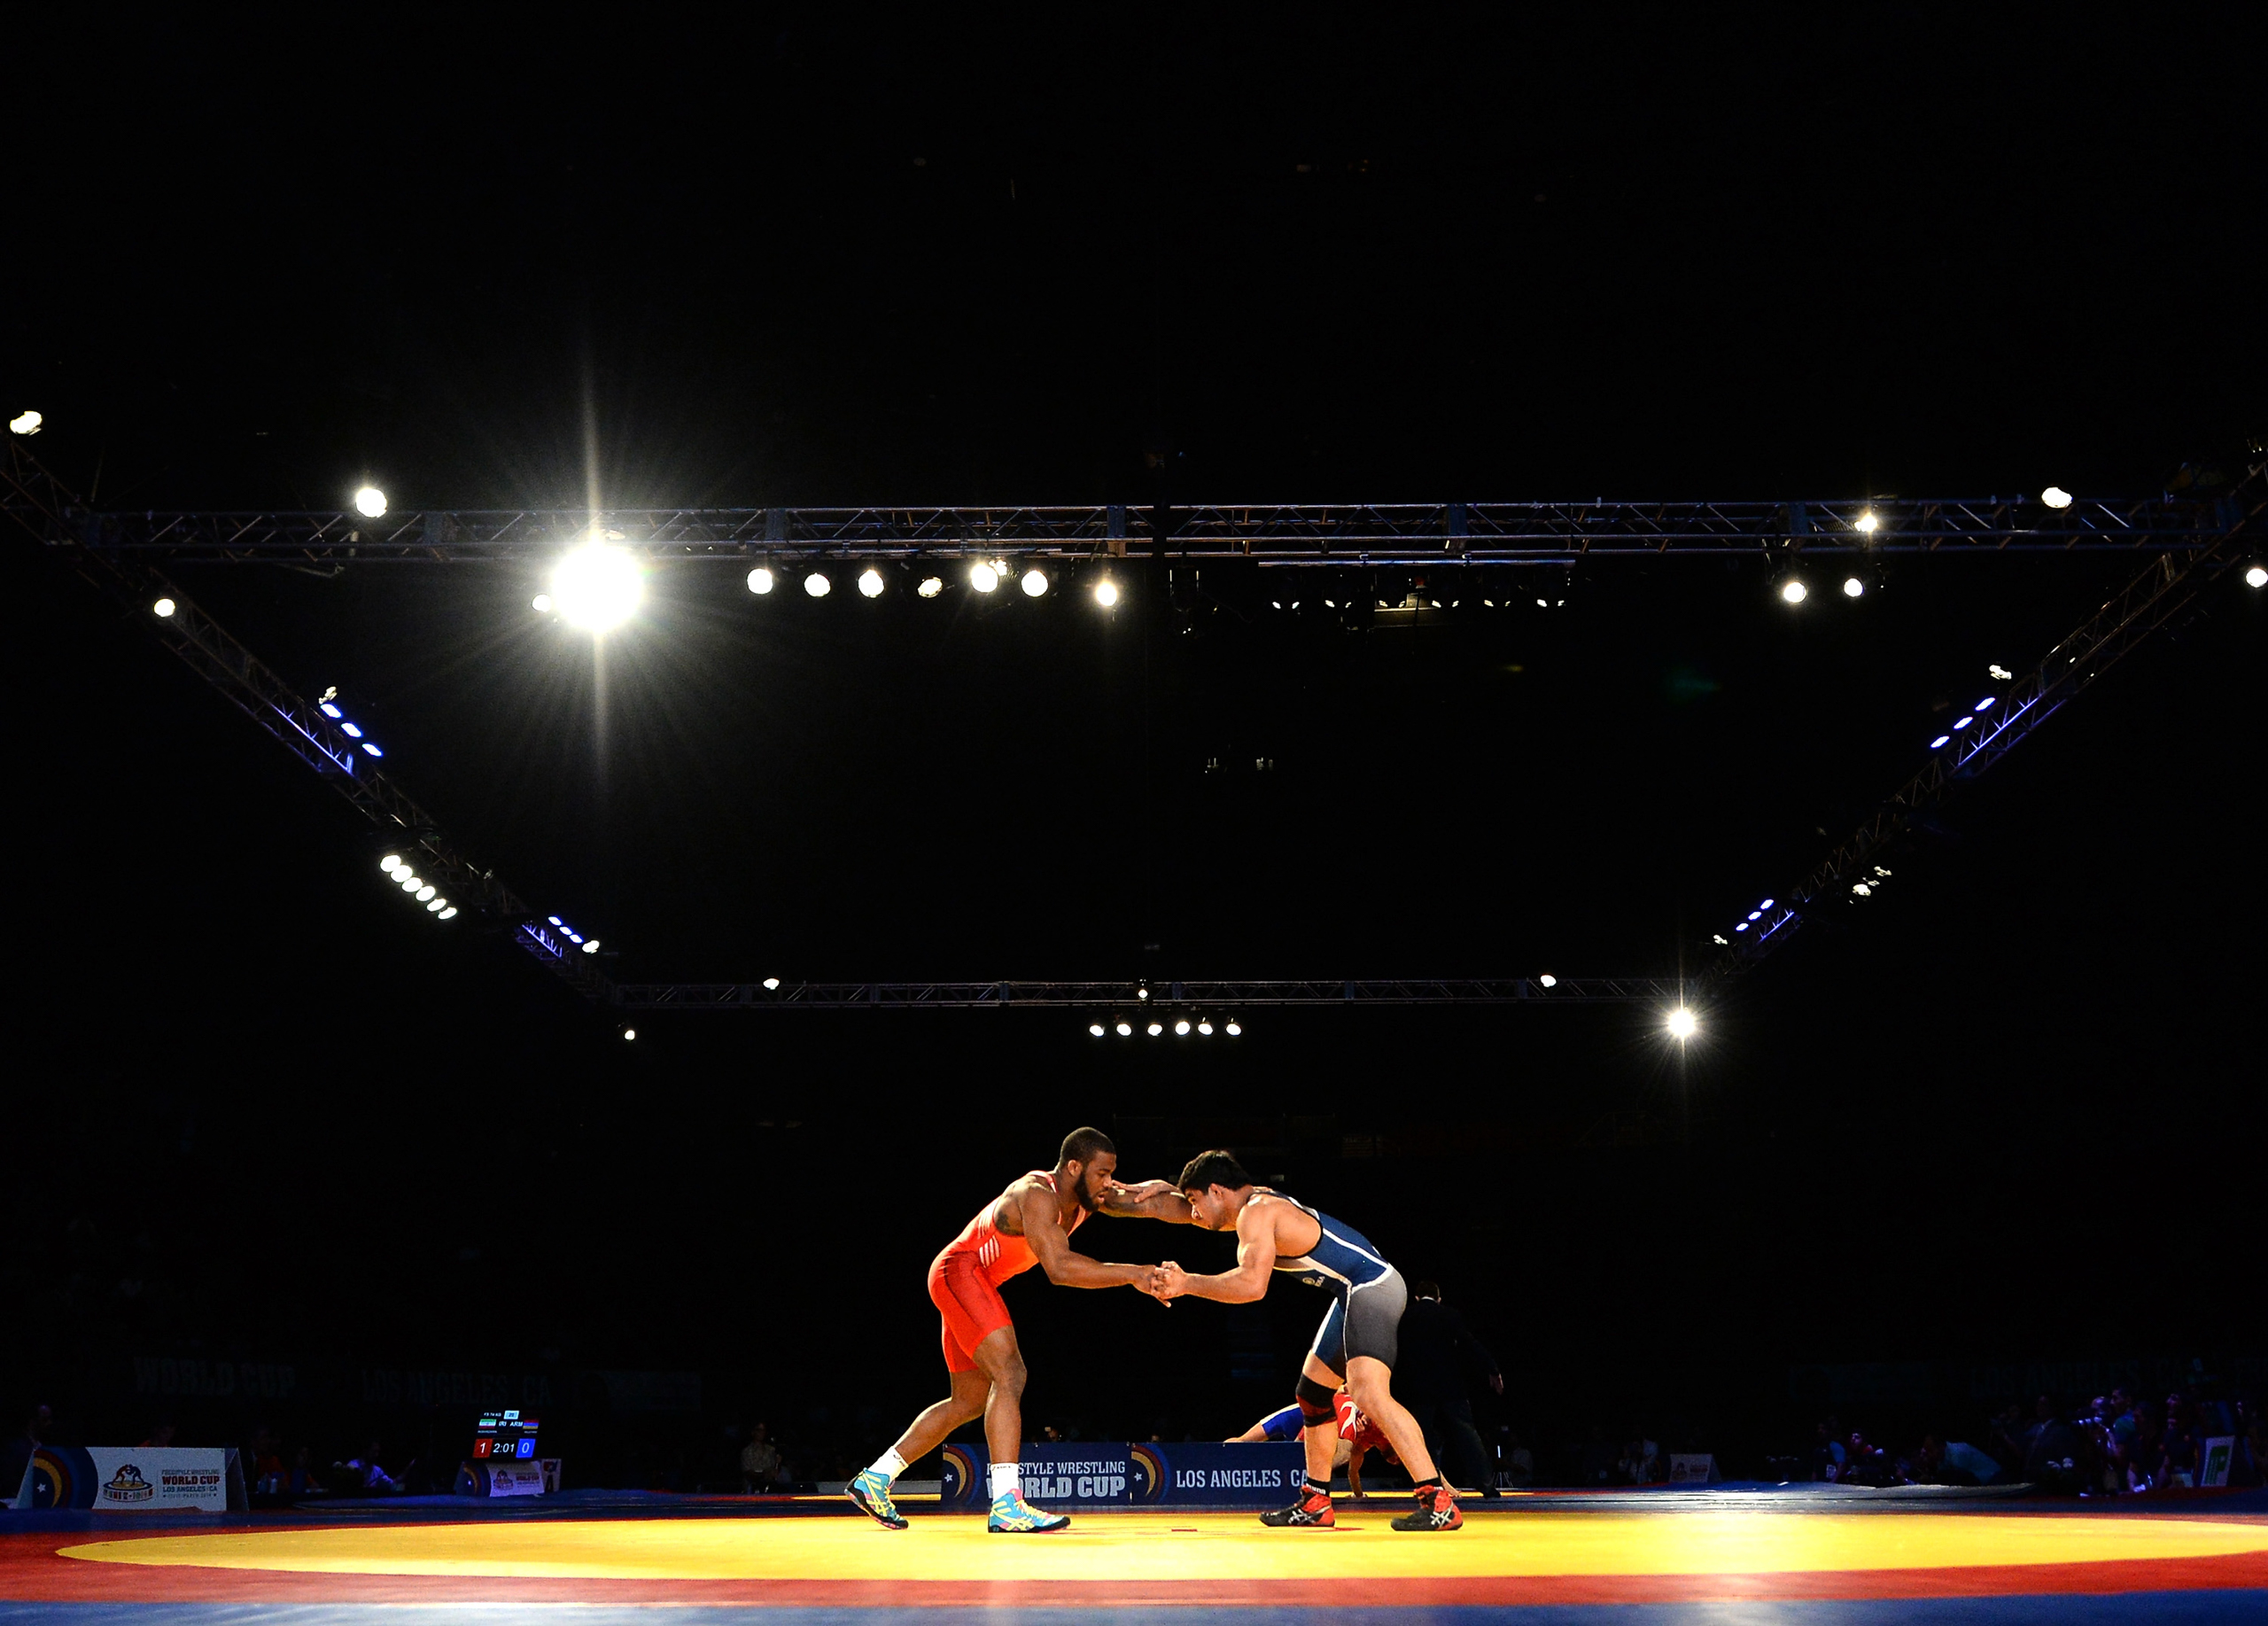 <strong> Jordan Burroughs, Wrestling, USA</strong>Wrestling: The Olympics always bring surprises, but the Camden, N.J., native is a safe bet to win a second straight gold: Burroughs is 24-1 in world and Olympic competition.